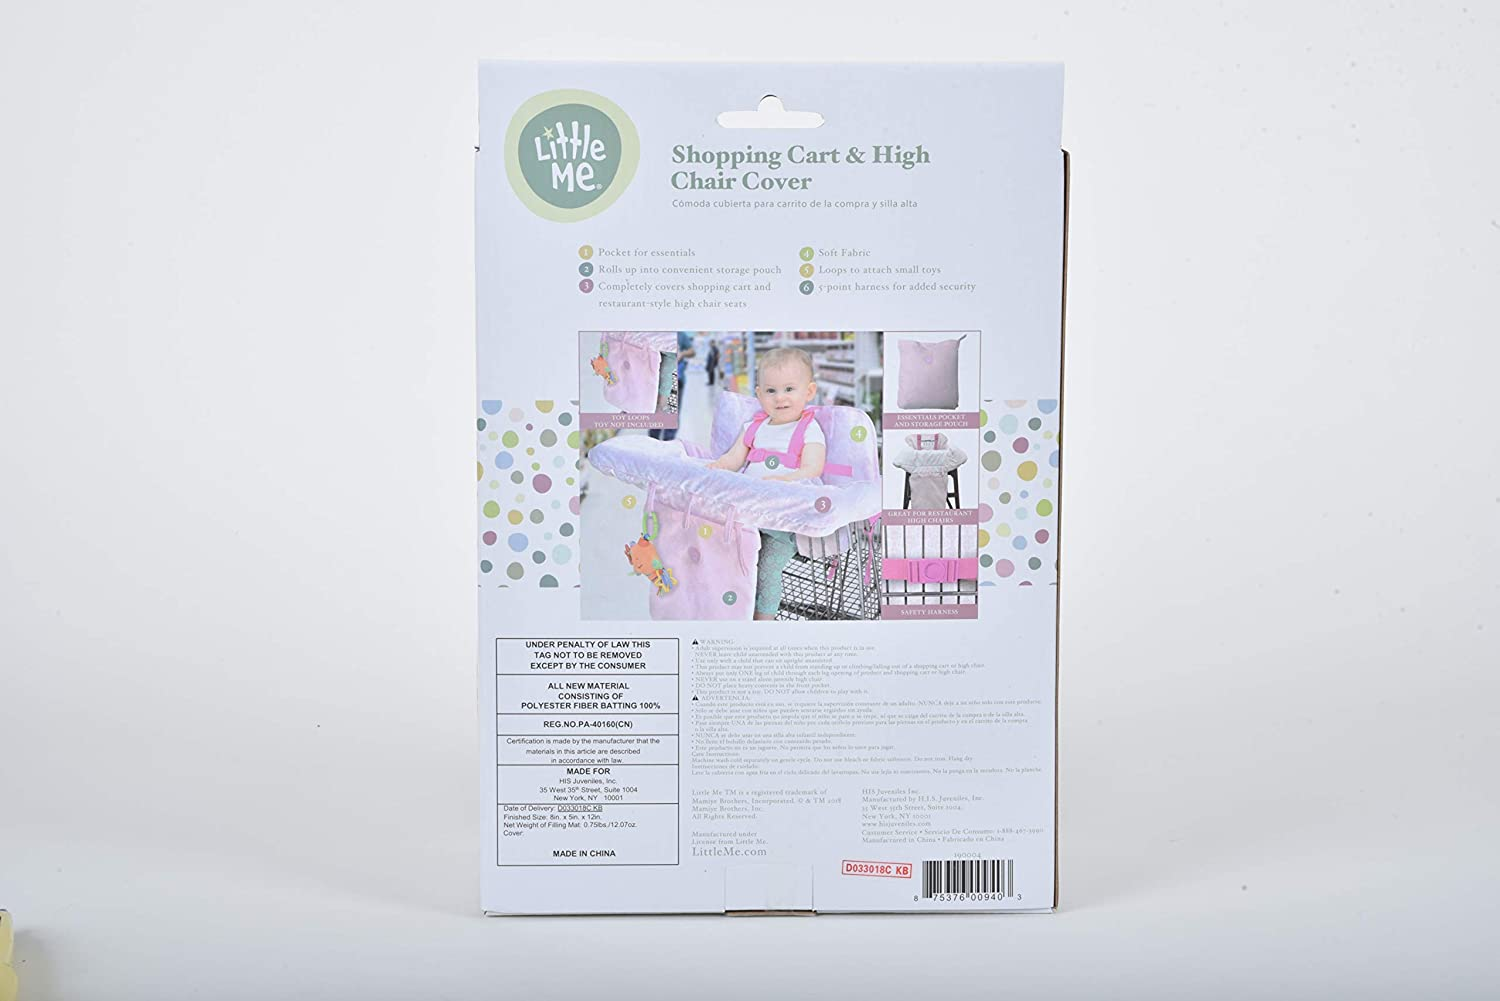 Amazon.com : Little Me Baby Shopping Cart Cover and High Chair Cover 2 in 1, Damask : Baby